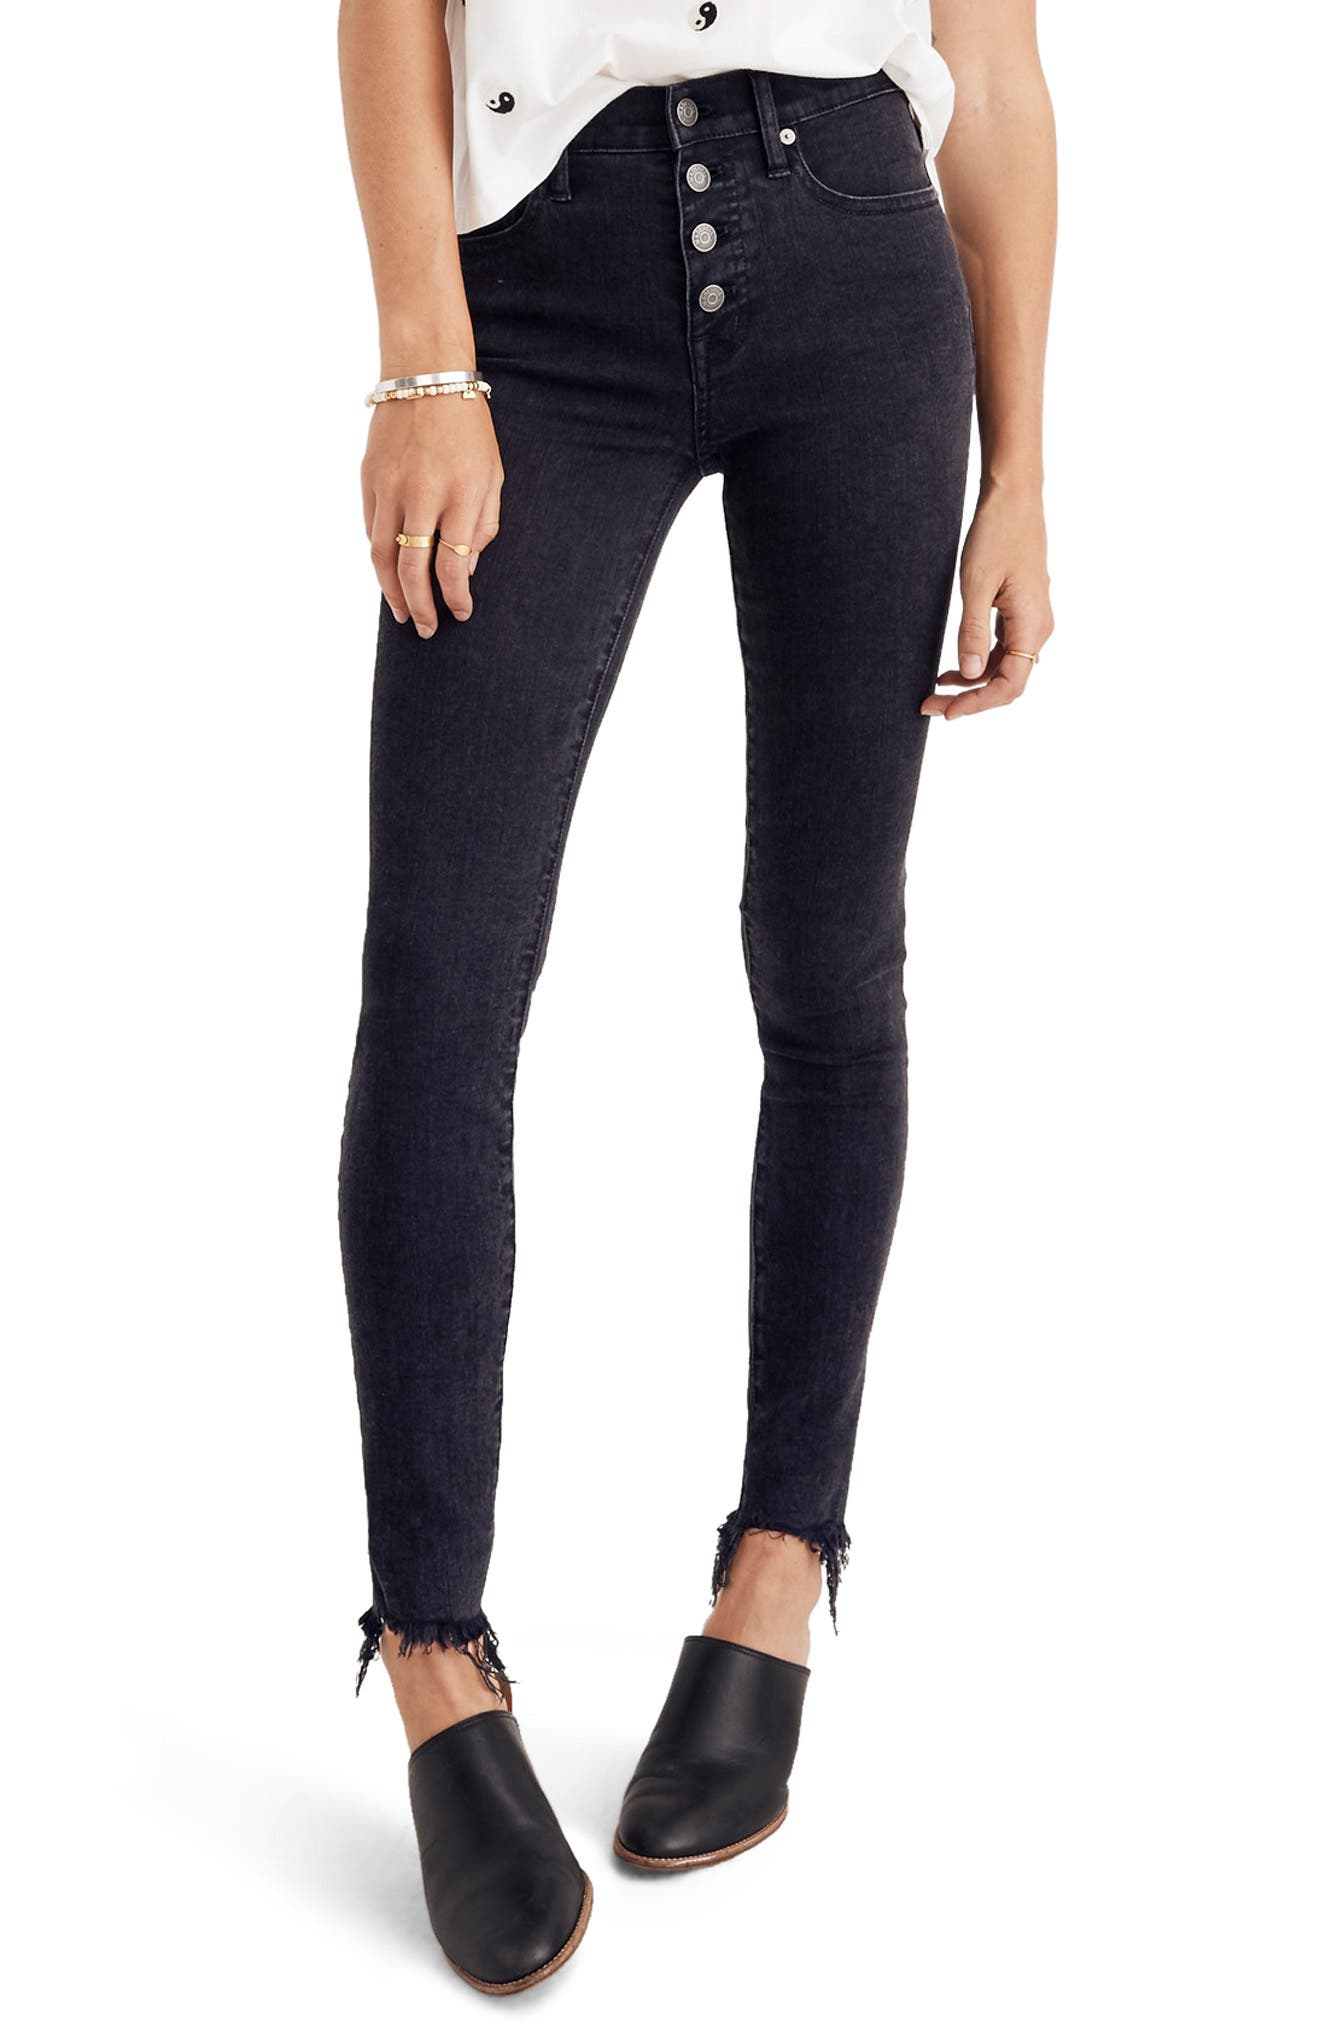 9-Inch Button High Waist Ankle Skinny Jeans,                             Main thumbnail 1, color,                             BERKELEY WASH